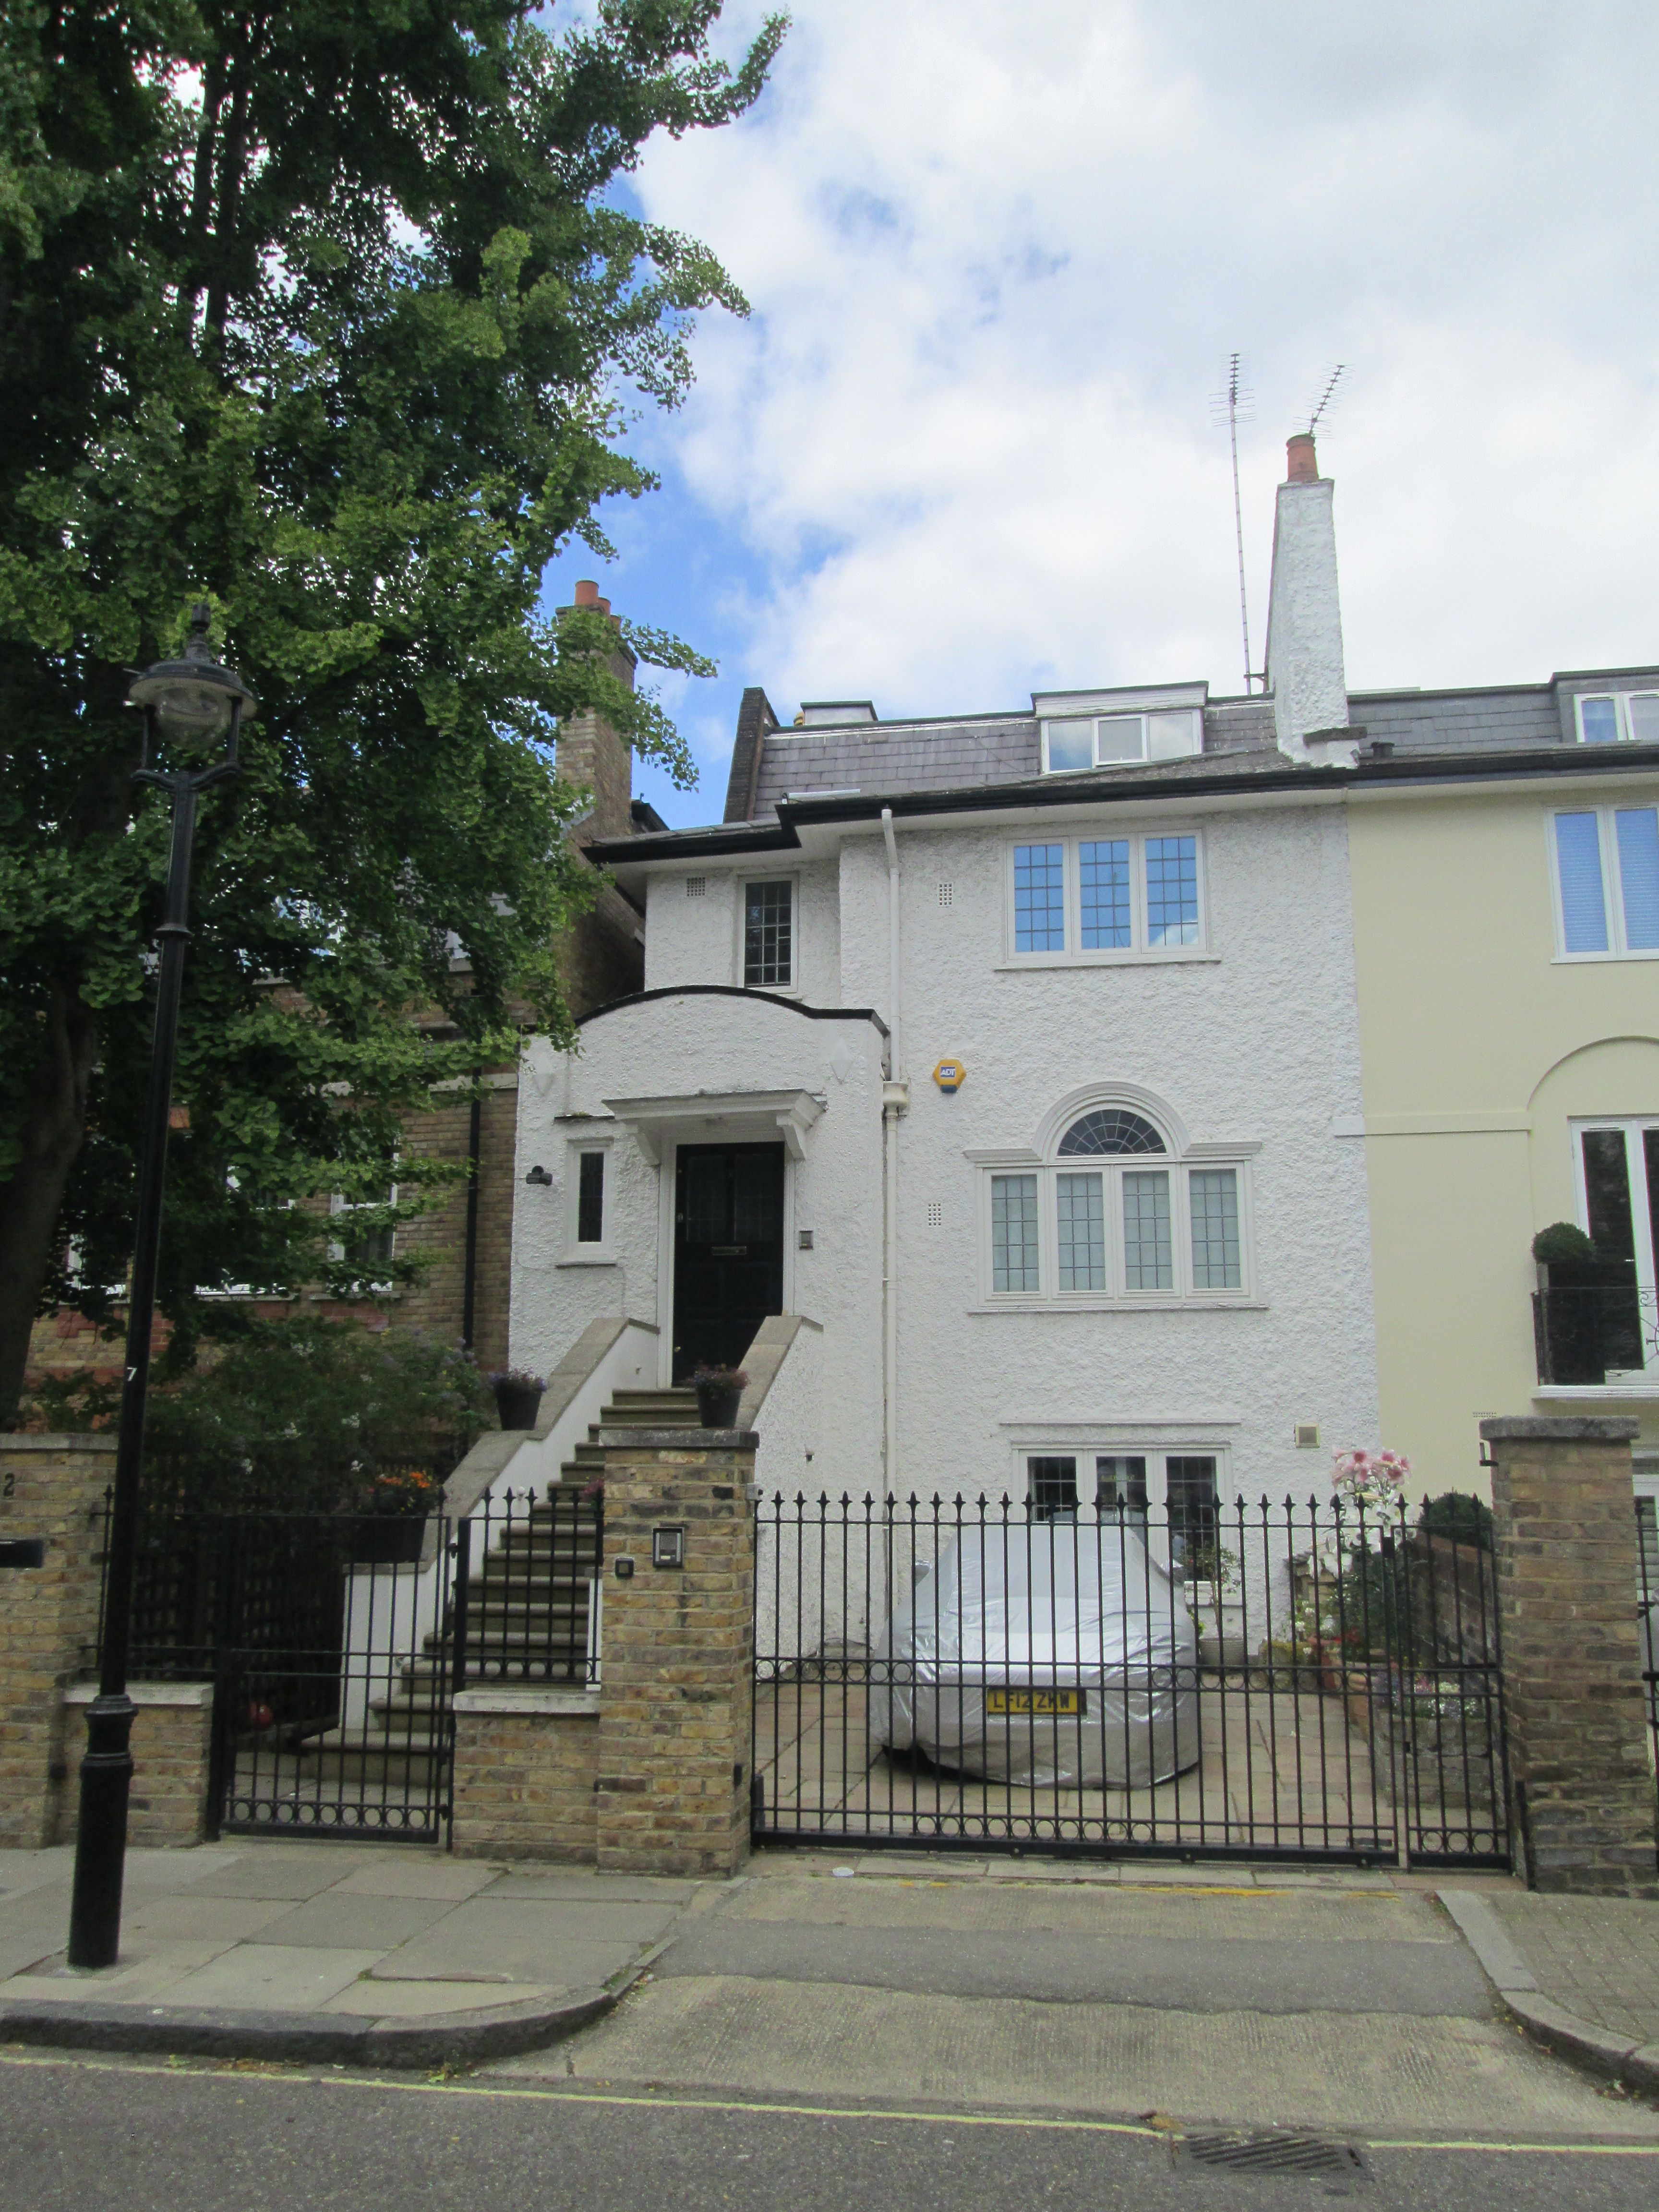 The Home Of Oasis Singer Liam Gallagher And Actress Patsy